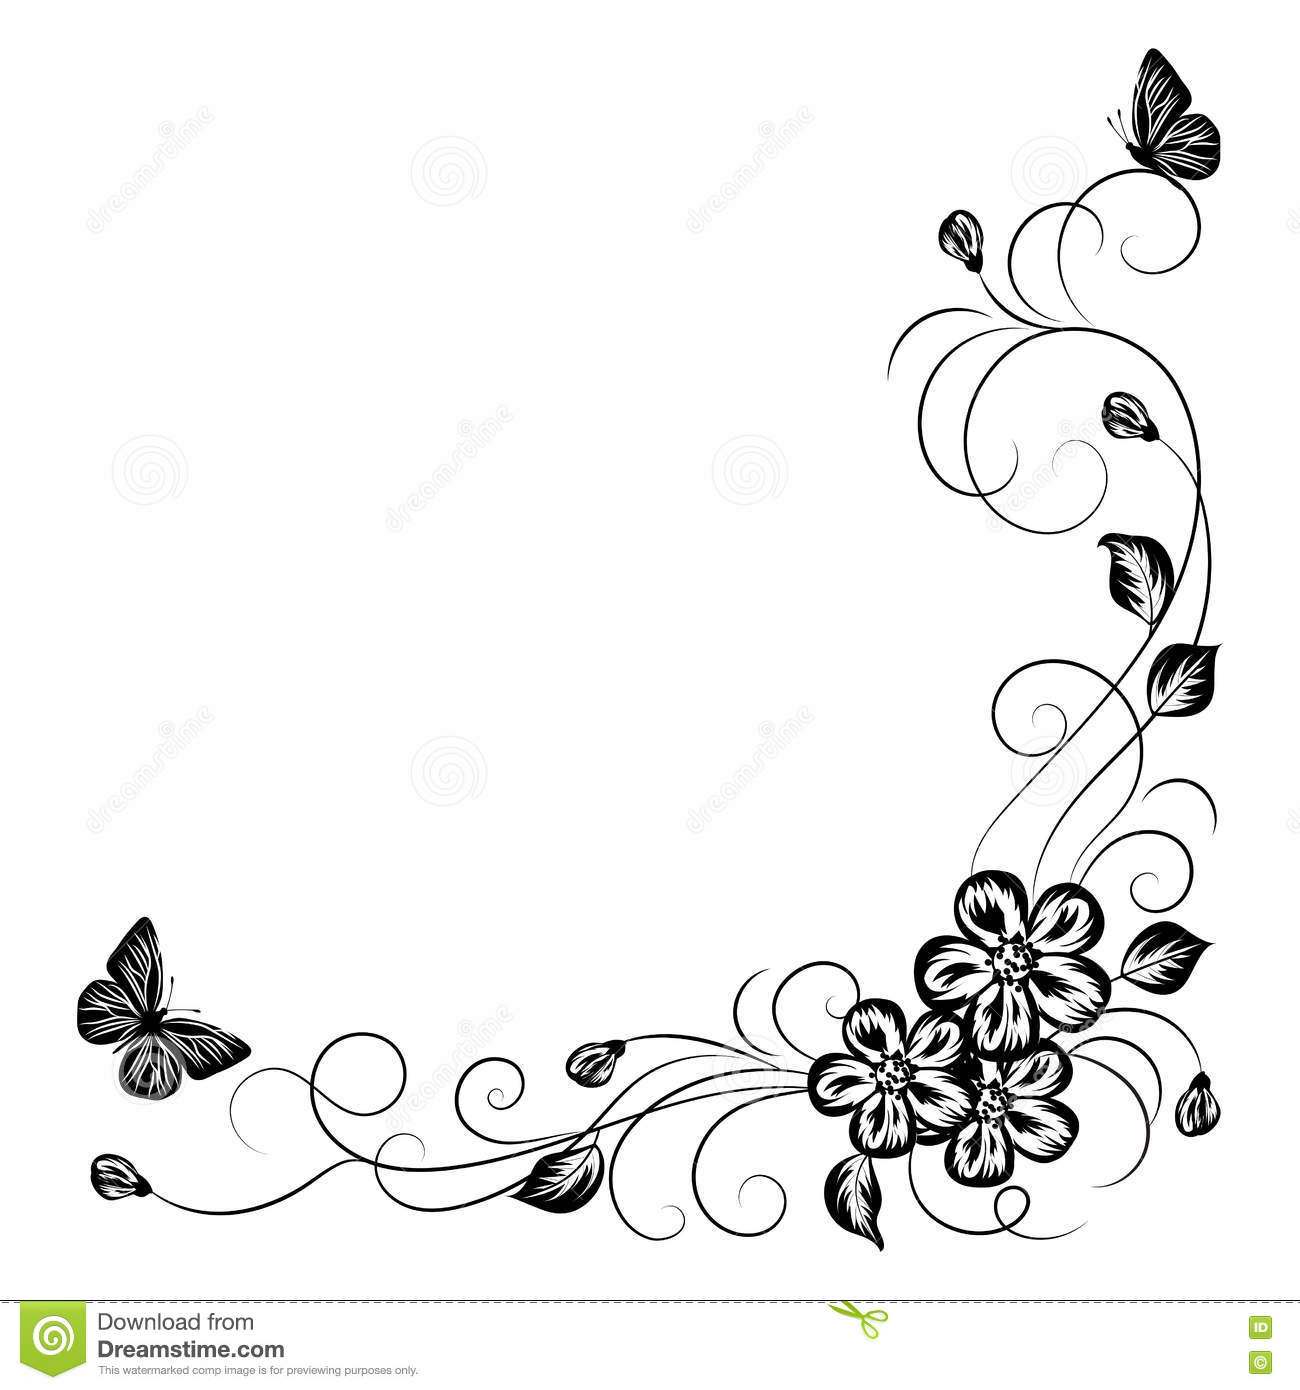 Simple Floral Background In Black And White Stock Vector ...